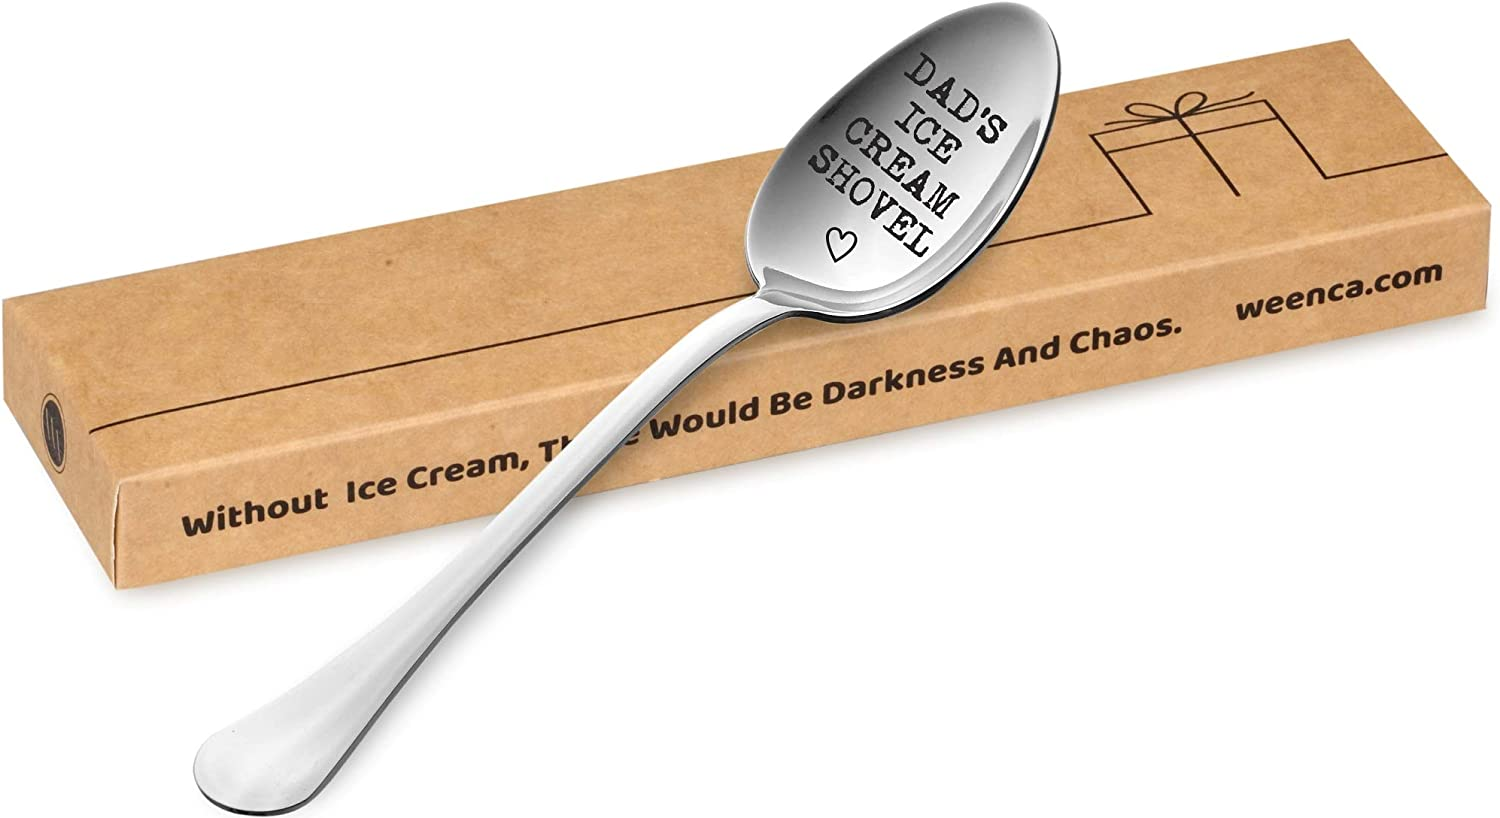 Weenca Engraved Dessert Spoon Dads Ice Cream Shovel Practical Gift for Dad Sturdy Stainless Steel Ice Cream Spoon Emotional Dad Gifts for Fathers Day or Christmas Gothic Style Font